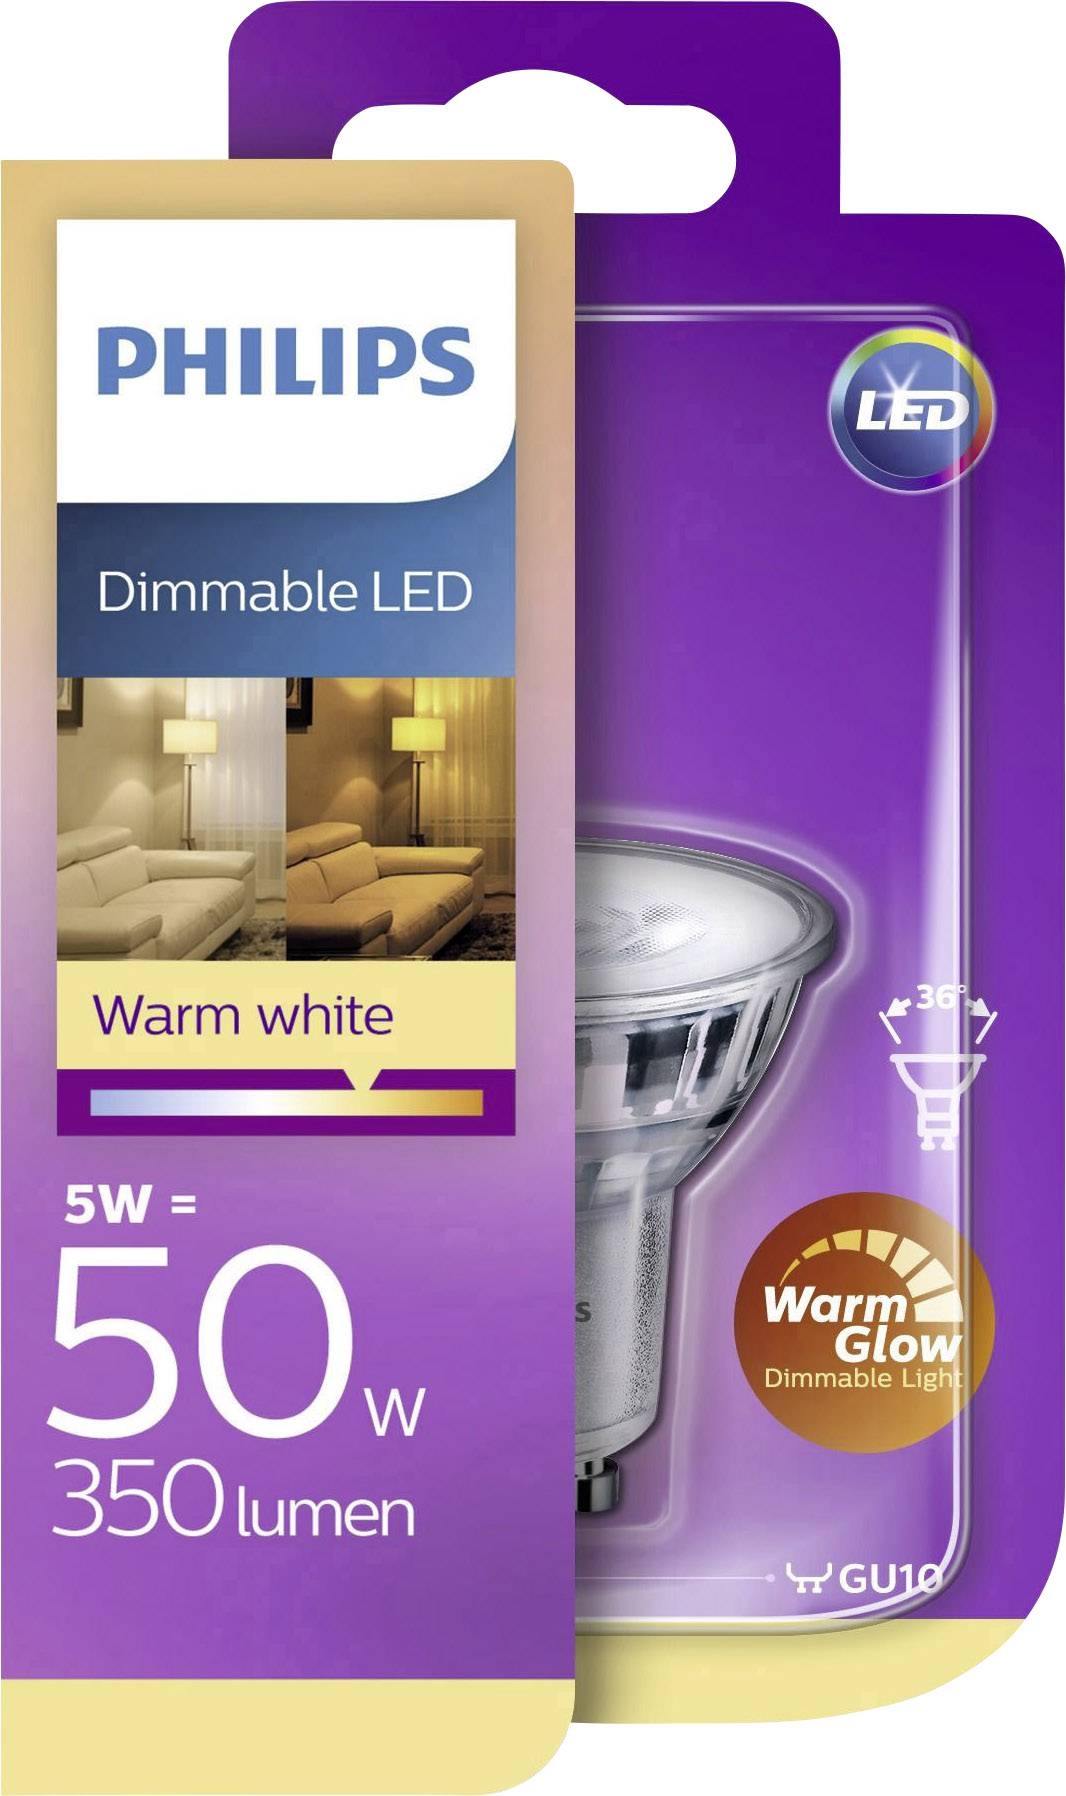 Led Gu10 Dimbaar Warm Wit Led Lamp Gu10 Reflector 5 W 50 W Warmwit Dimbaar Warmglow 1 Stuks Philips Lighting 929001364101